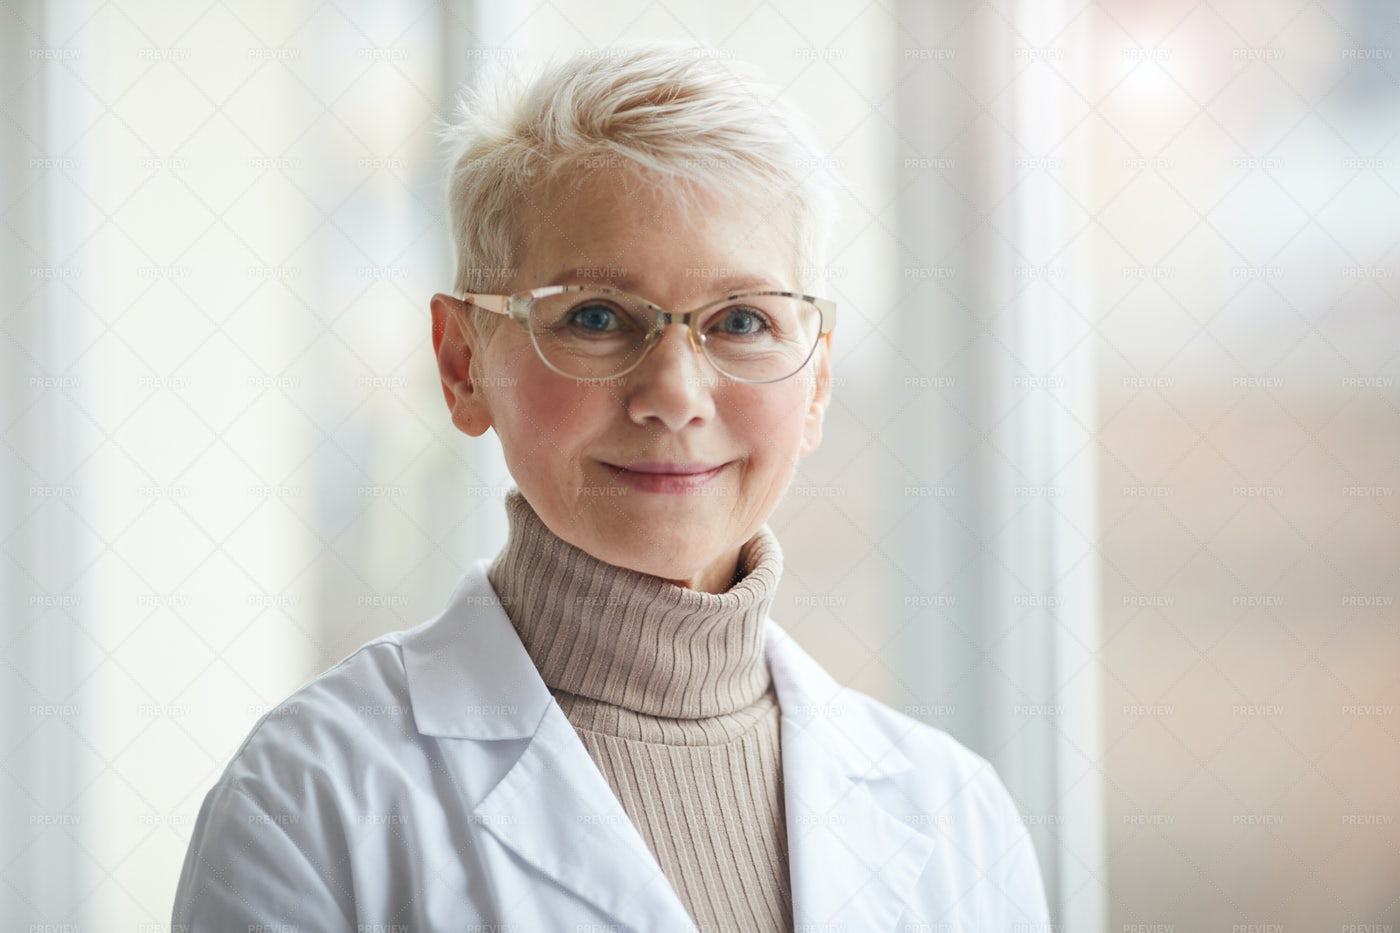 Portrait Of Smiling Female Doctor: Stock Photos